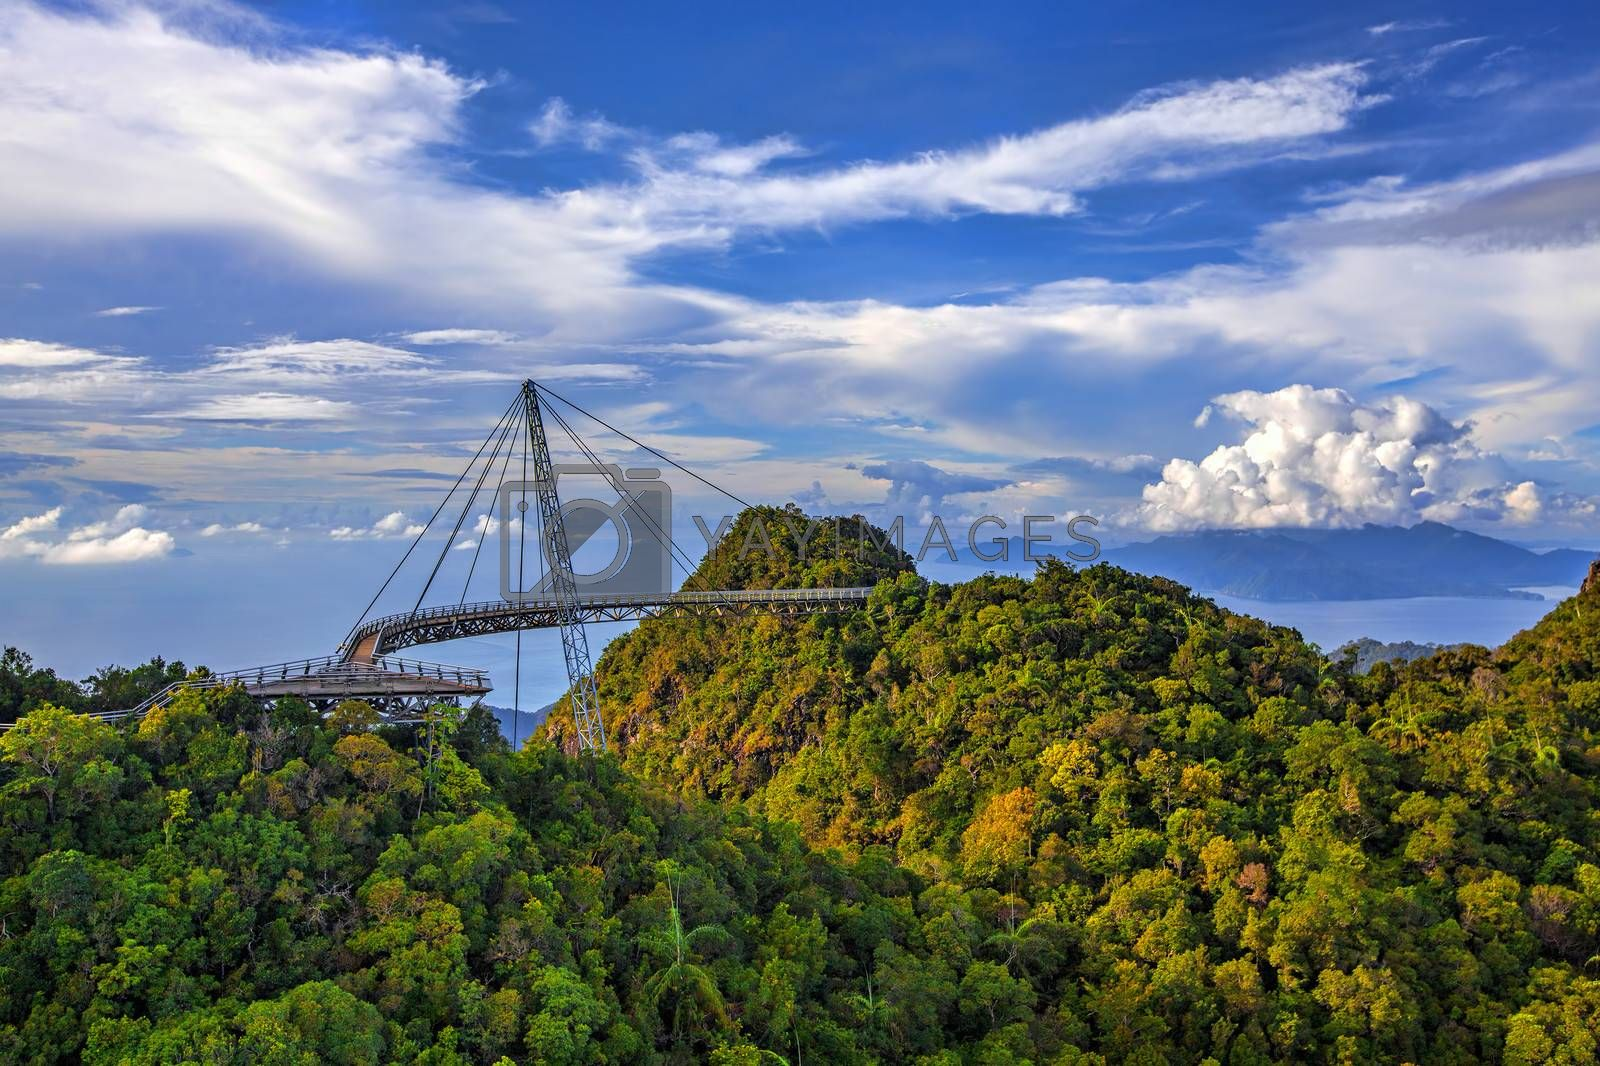 The landscape of Langkawi seen from Cable Car viewpoint